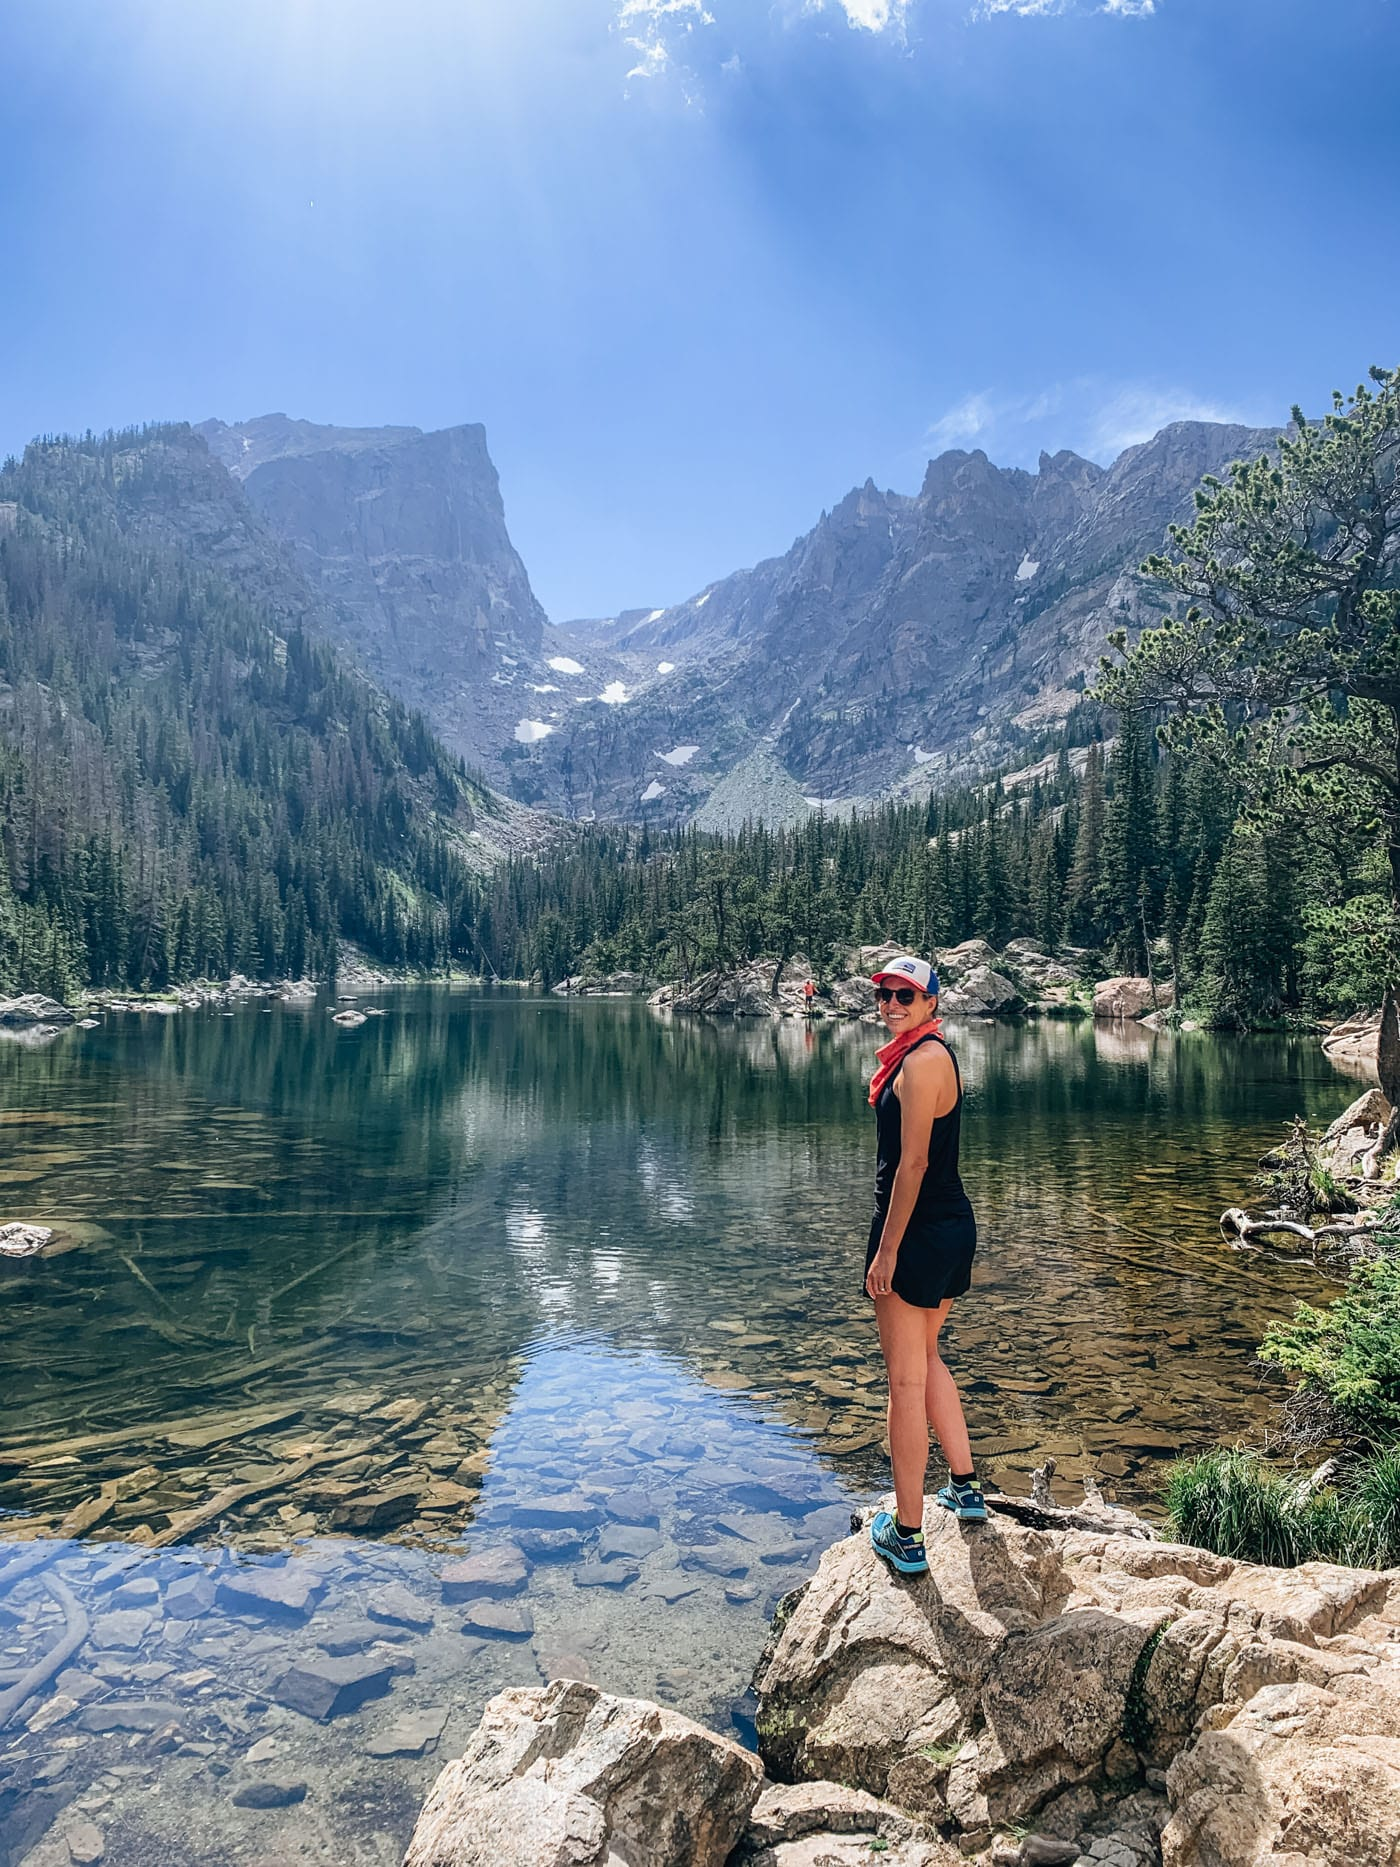 Blue Mountain Belle at Dream Lake in RMNP